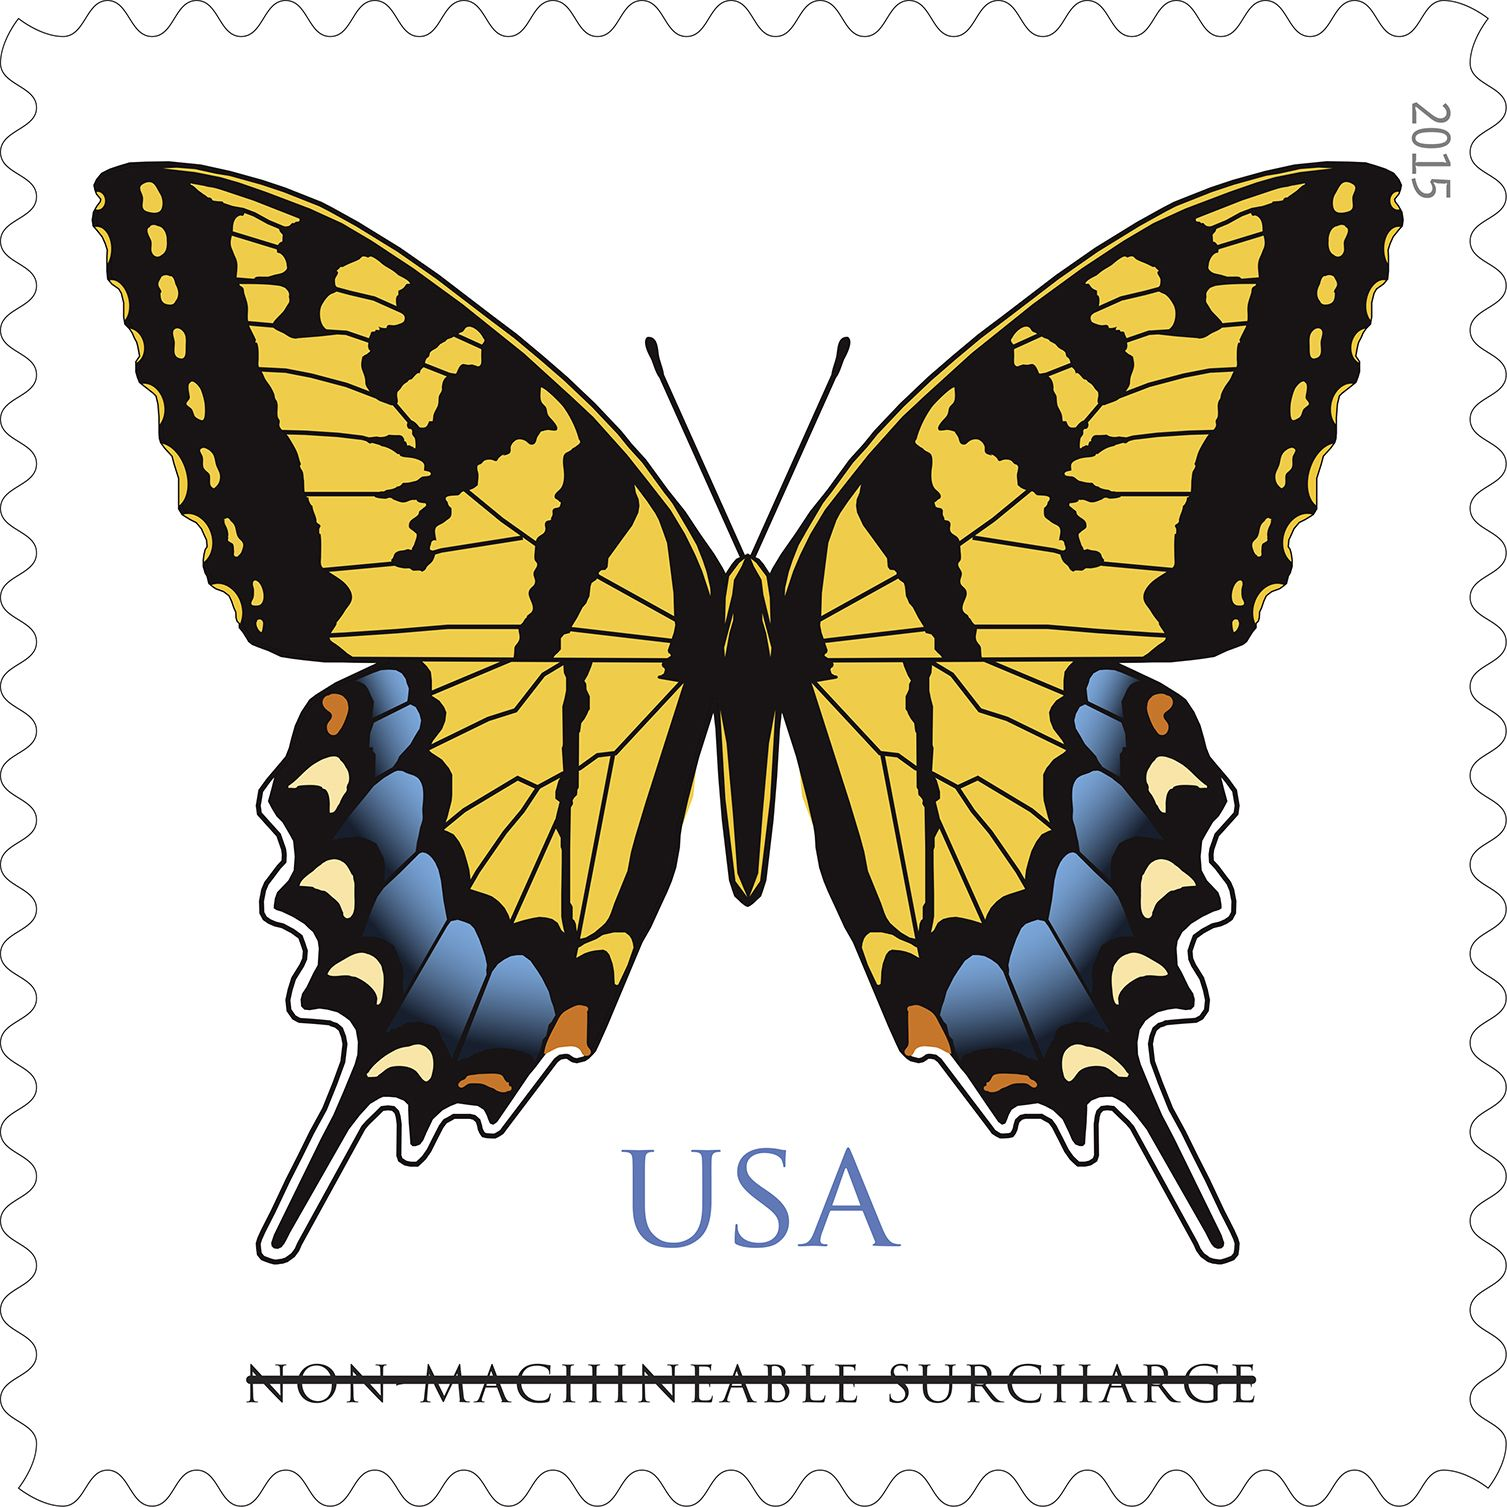 Usps Stamps Postage Stamp Design Usps Stamps Stamp Design